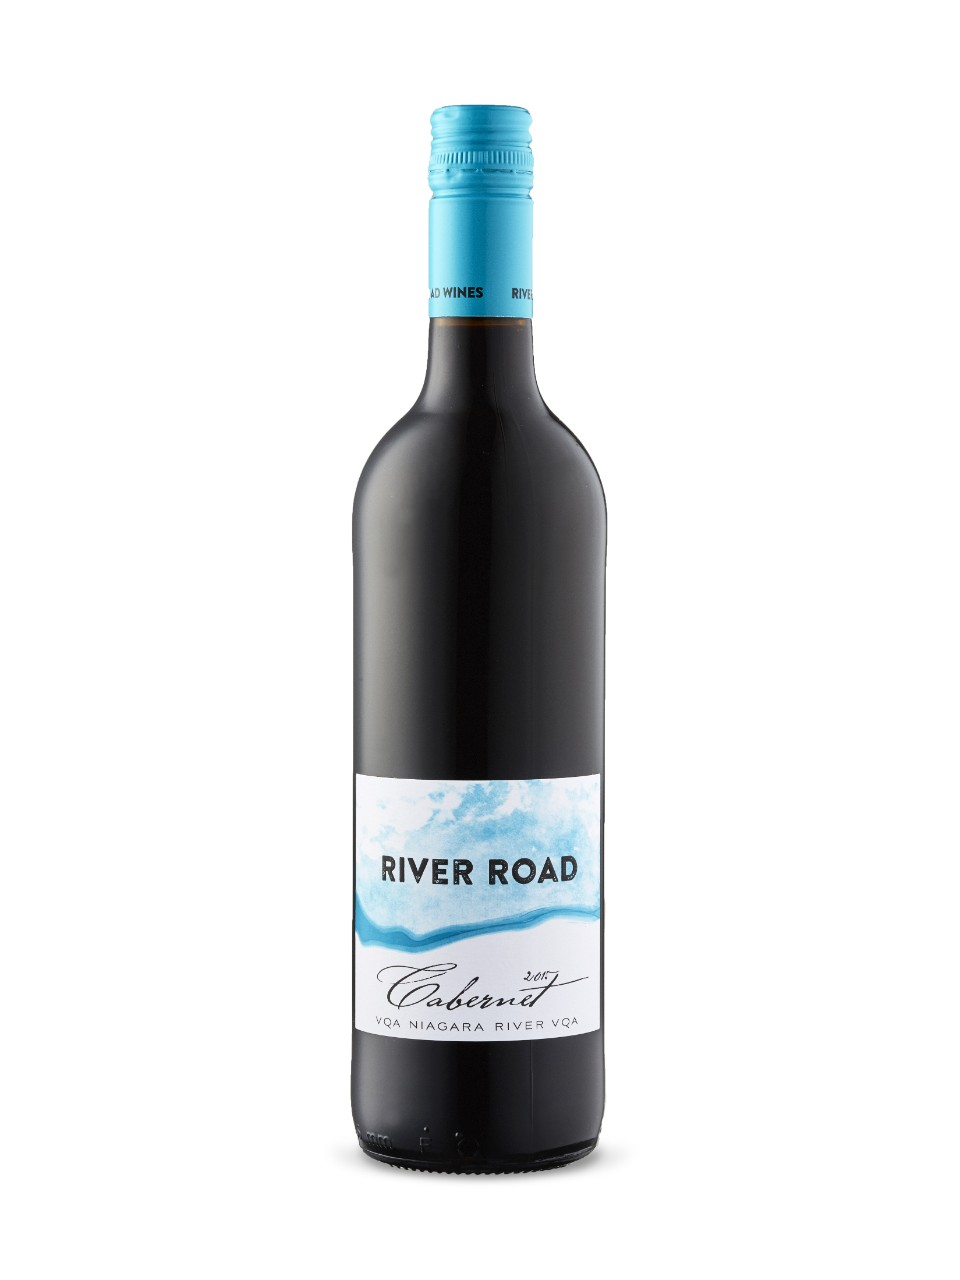 River Road Cabernet VQA from LCBO